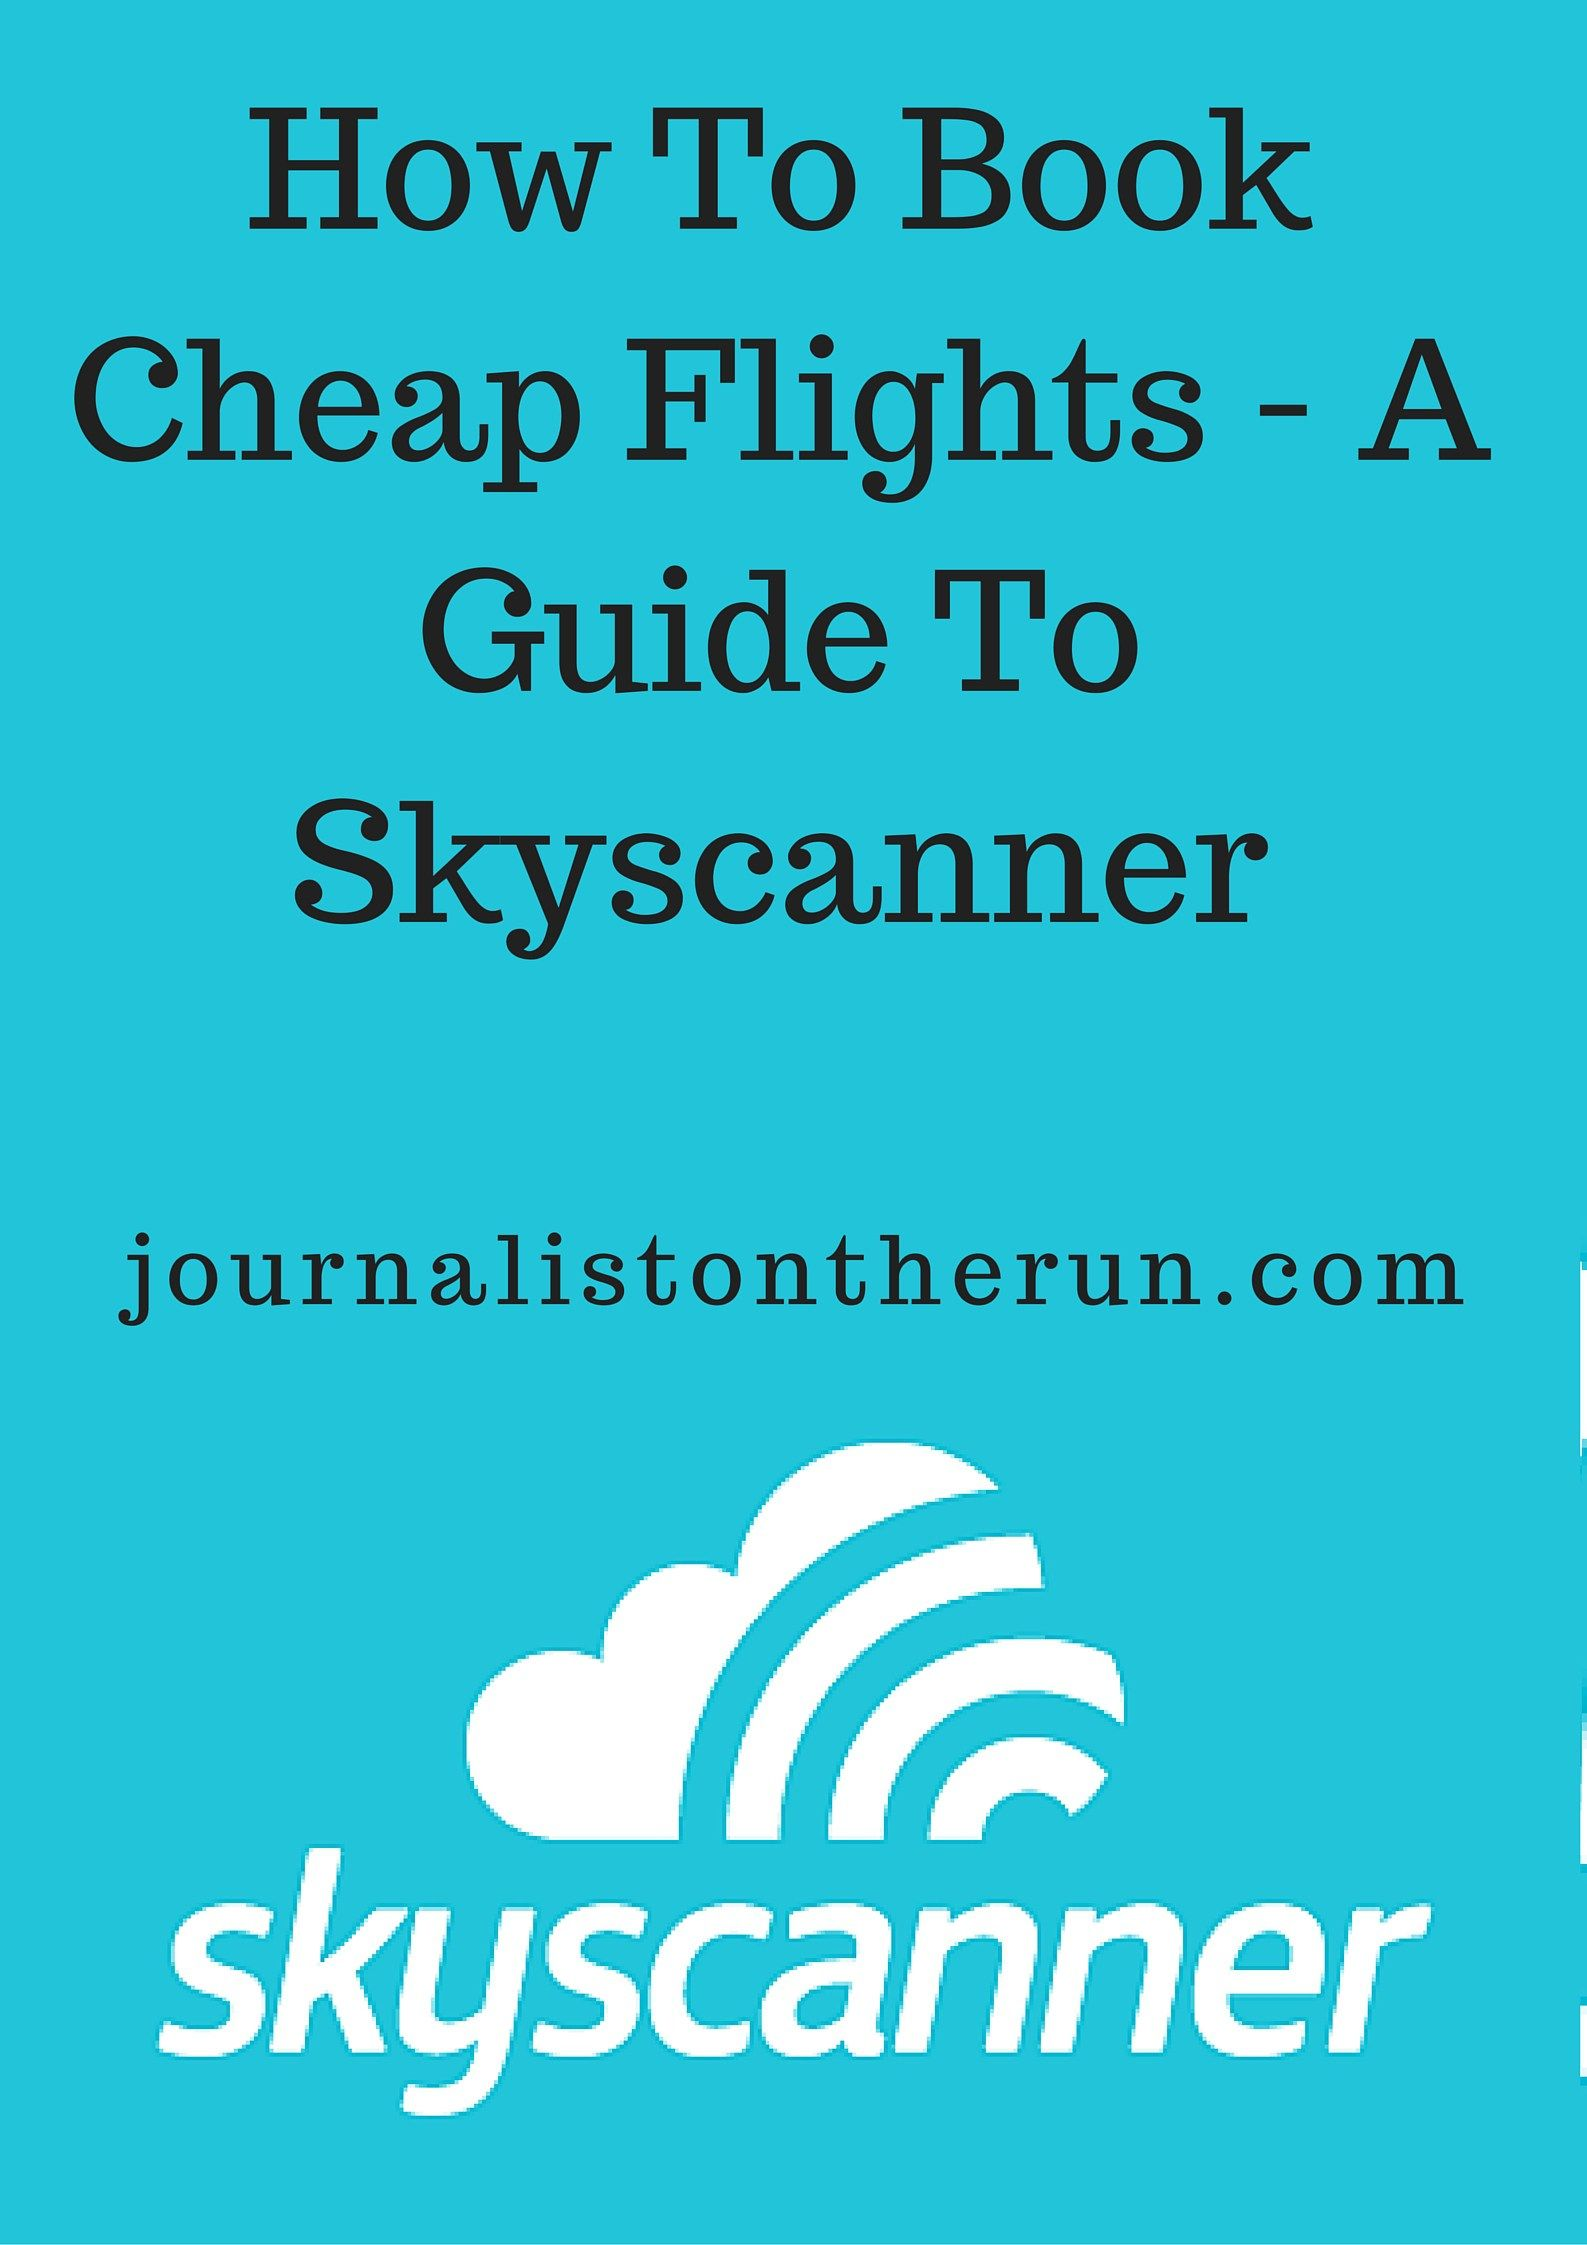 Skyscanner Review: Read BEFORE Booking Cheap Flights ...